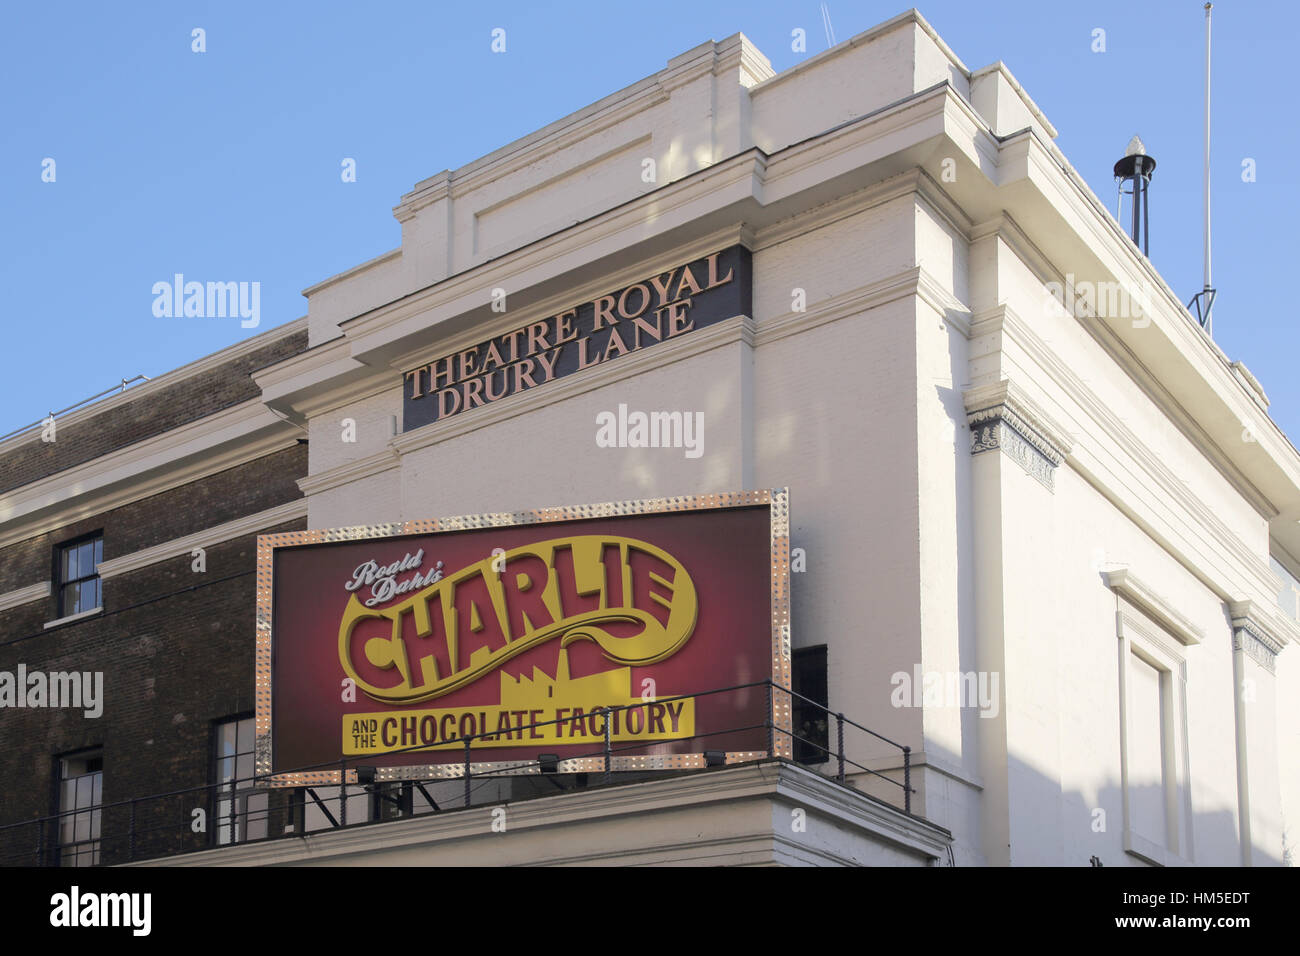 charlie and the chocolate factory theatre royal in drury lane in the west end of london - Stock Image